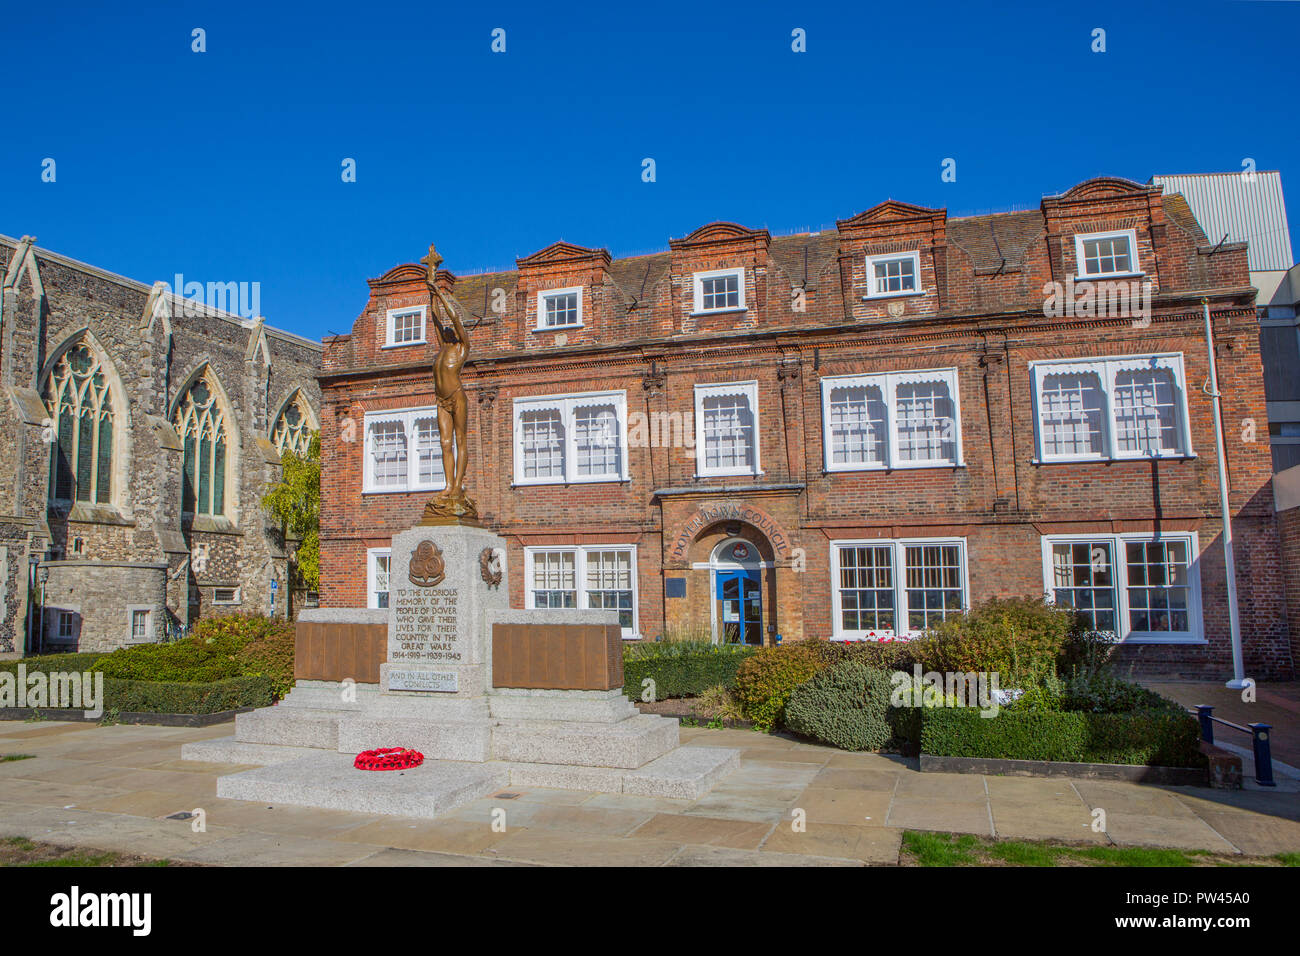 Dover Town Council offices and war memorial, Maison Dieu House - Stock Image